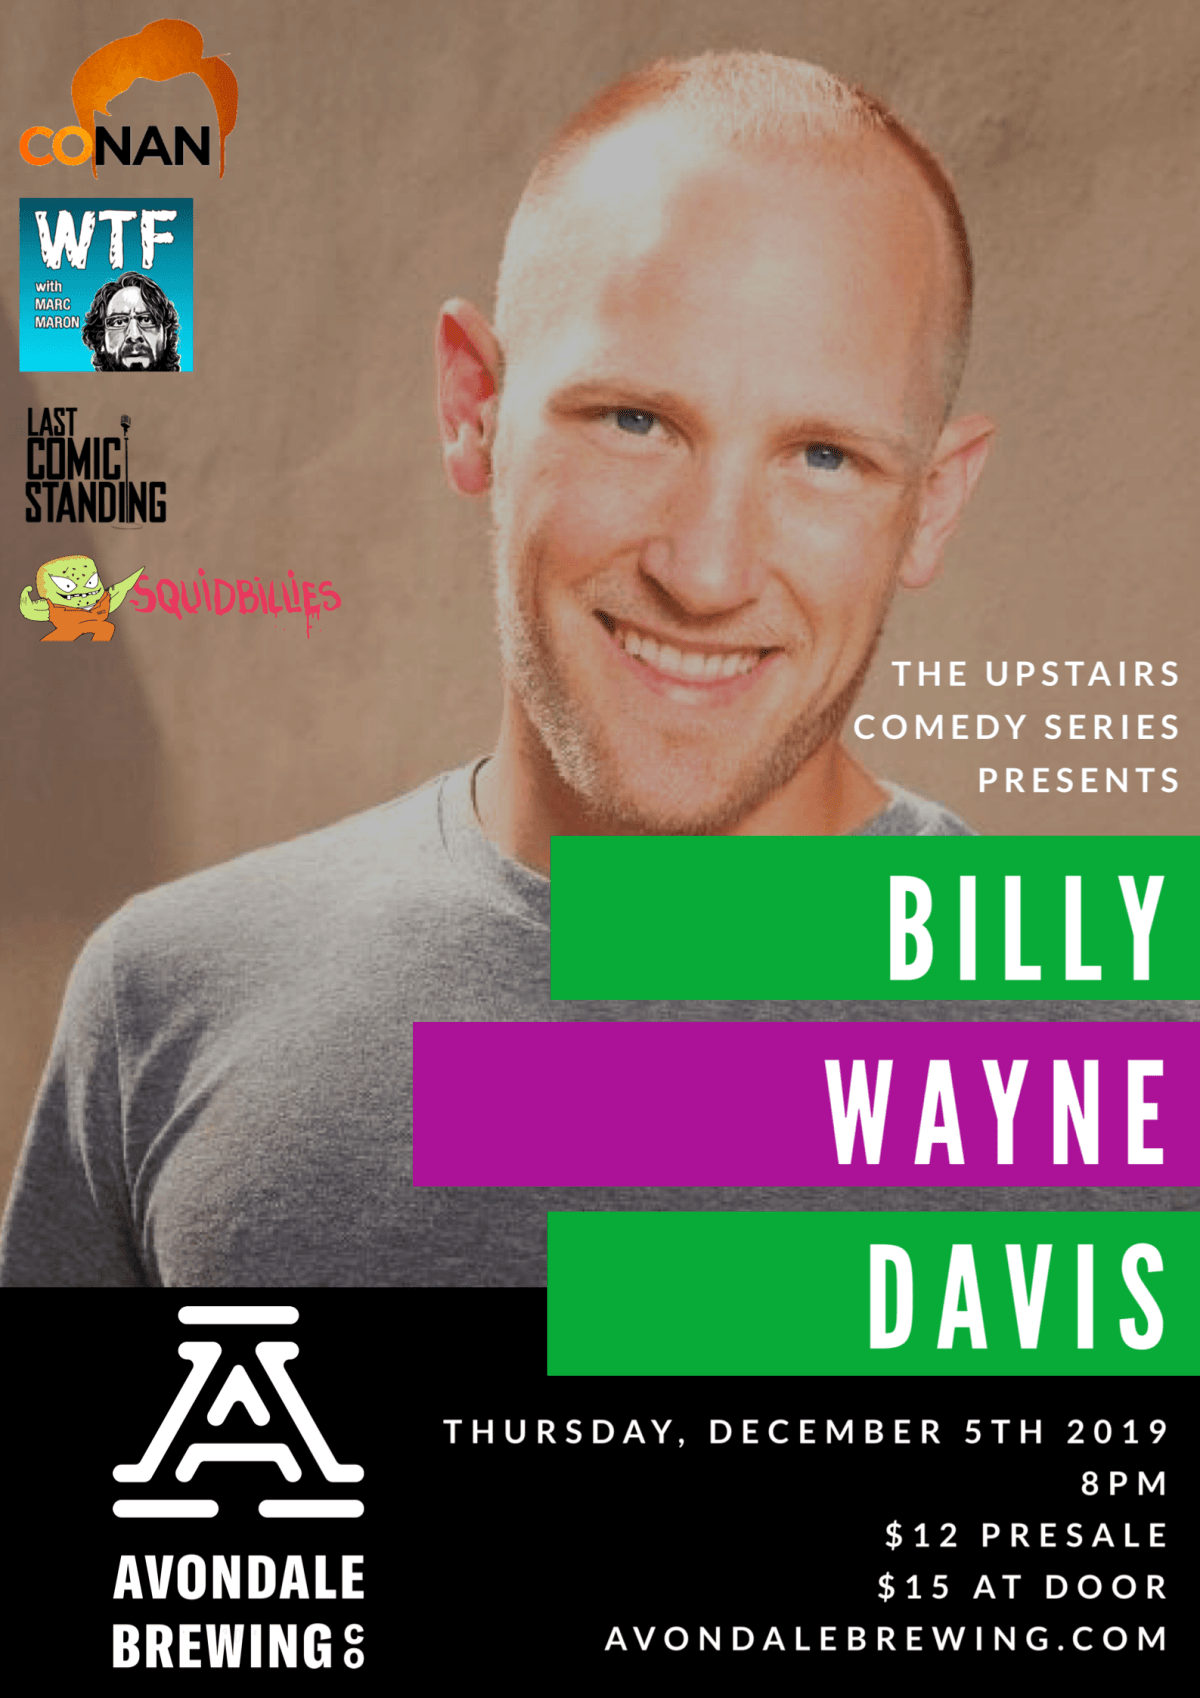 The Upstairs Comedy Series Presents: Billy Wayne Davis